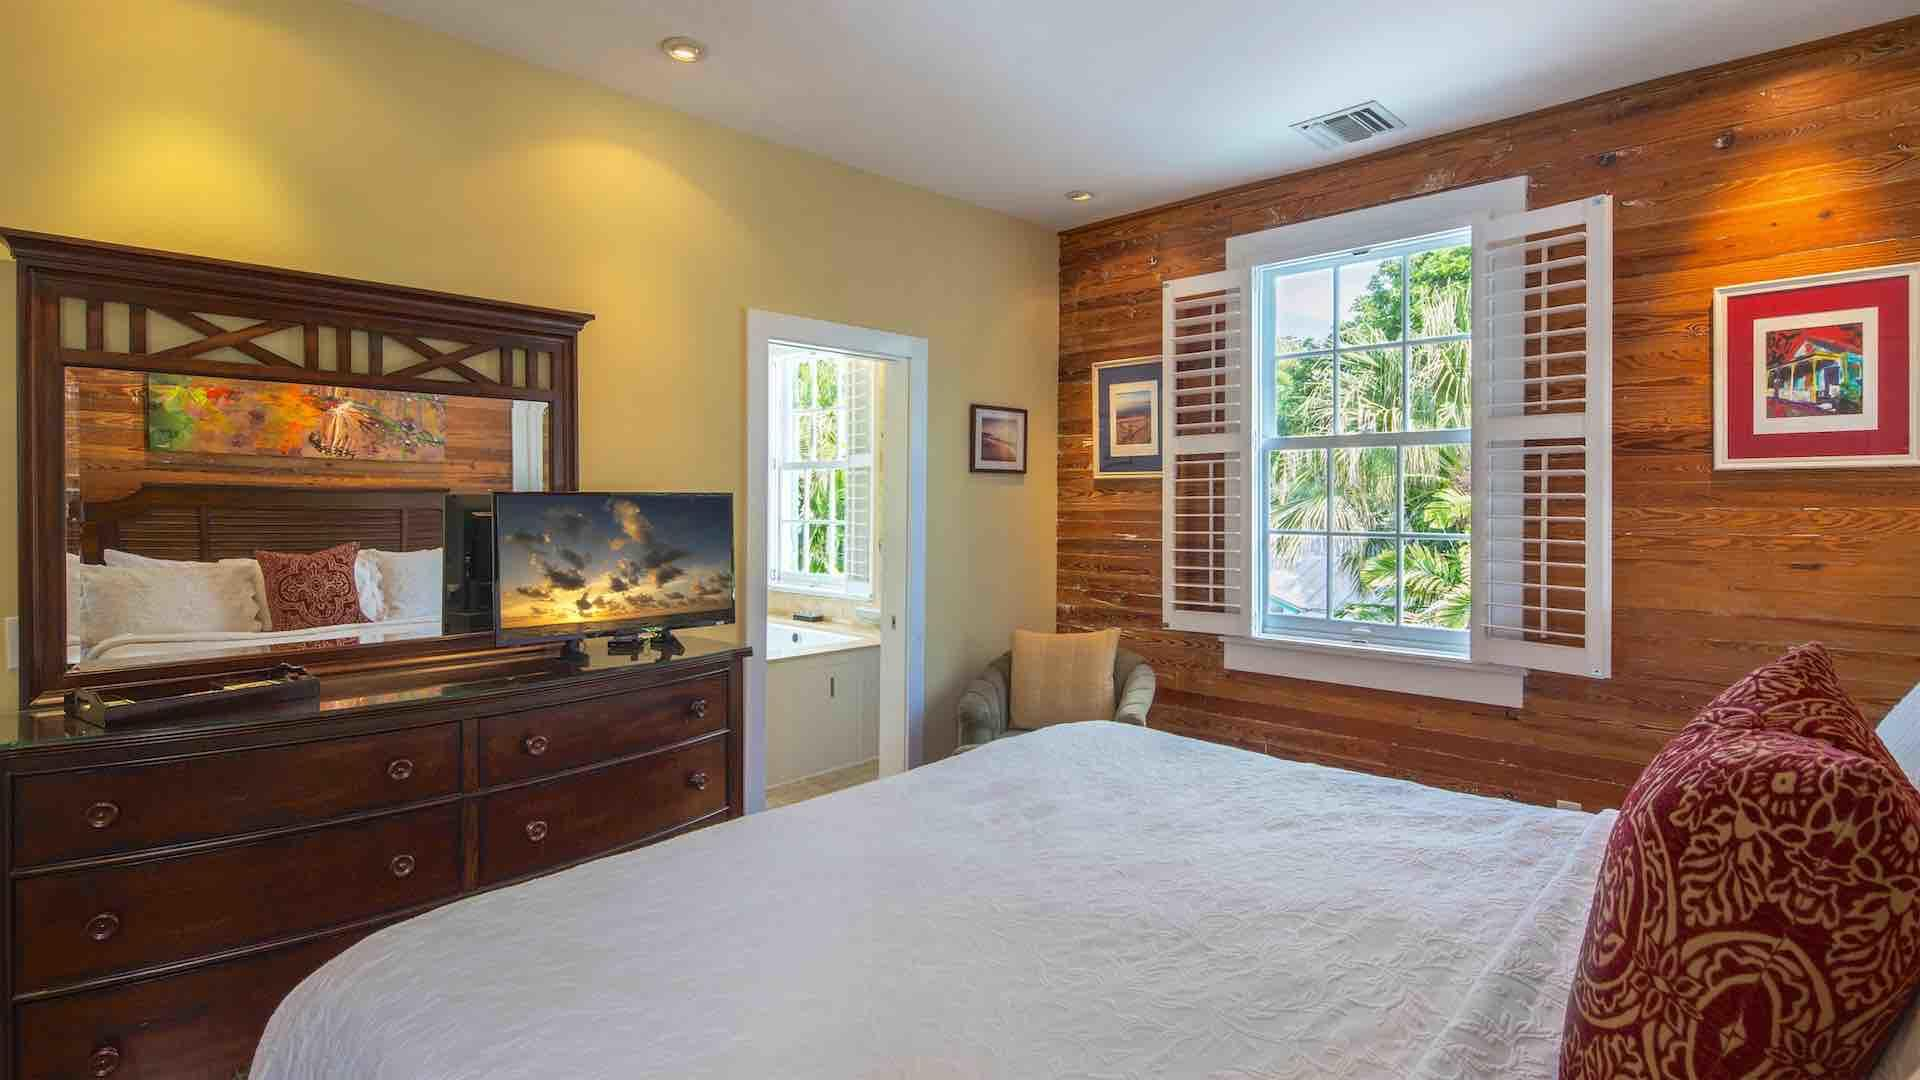 The master bedroom has more Dade County Pine, overhead fan and a flat screen TV…